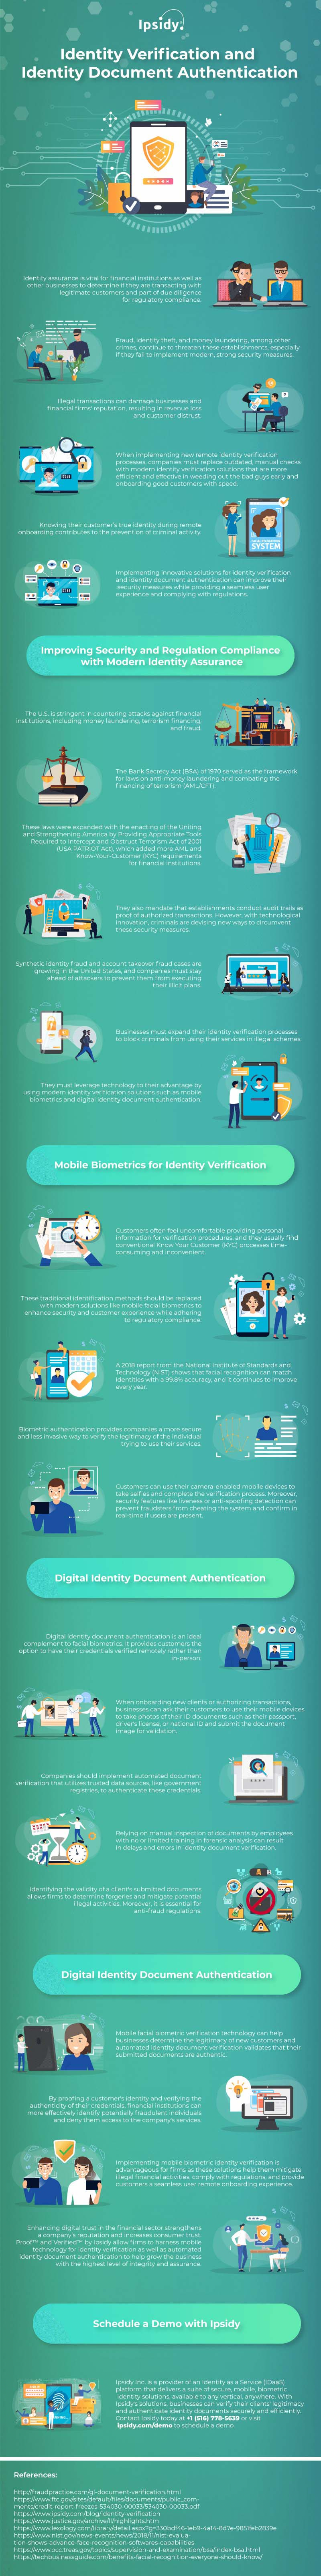 Identity Verification and Identity Document Authentication